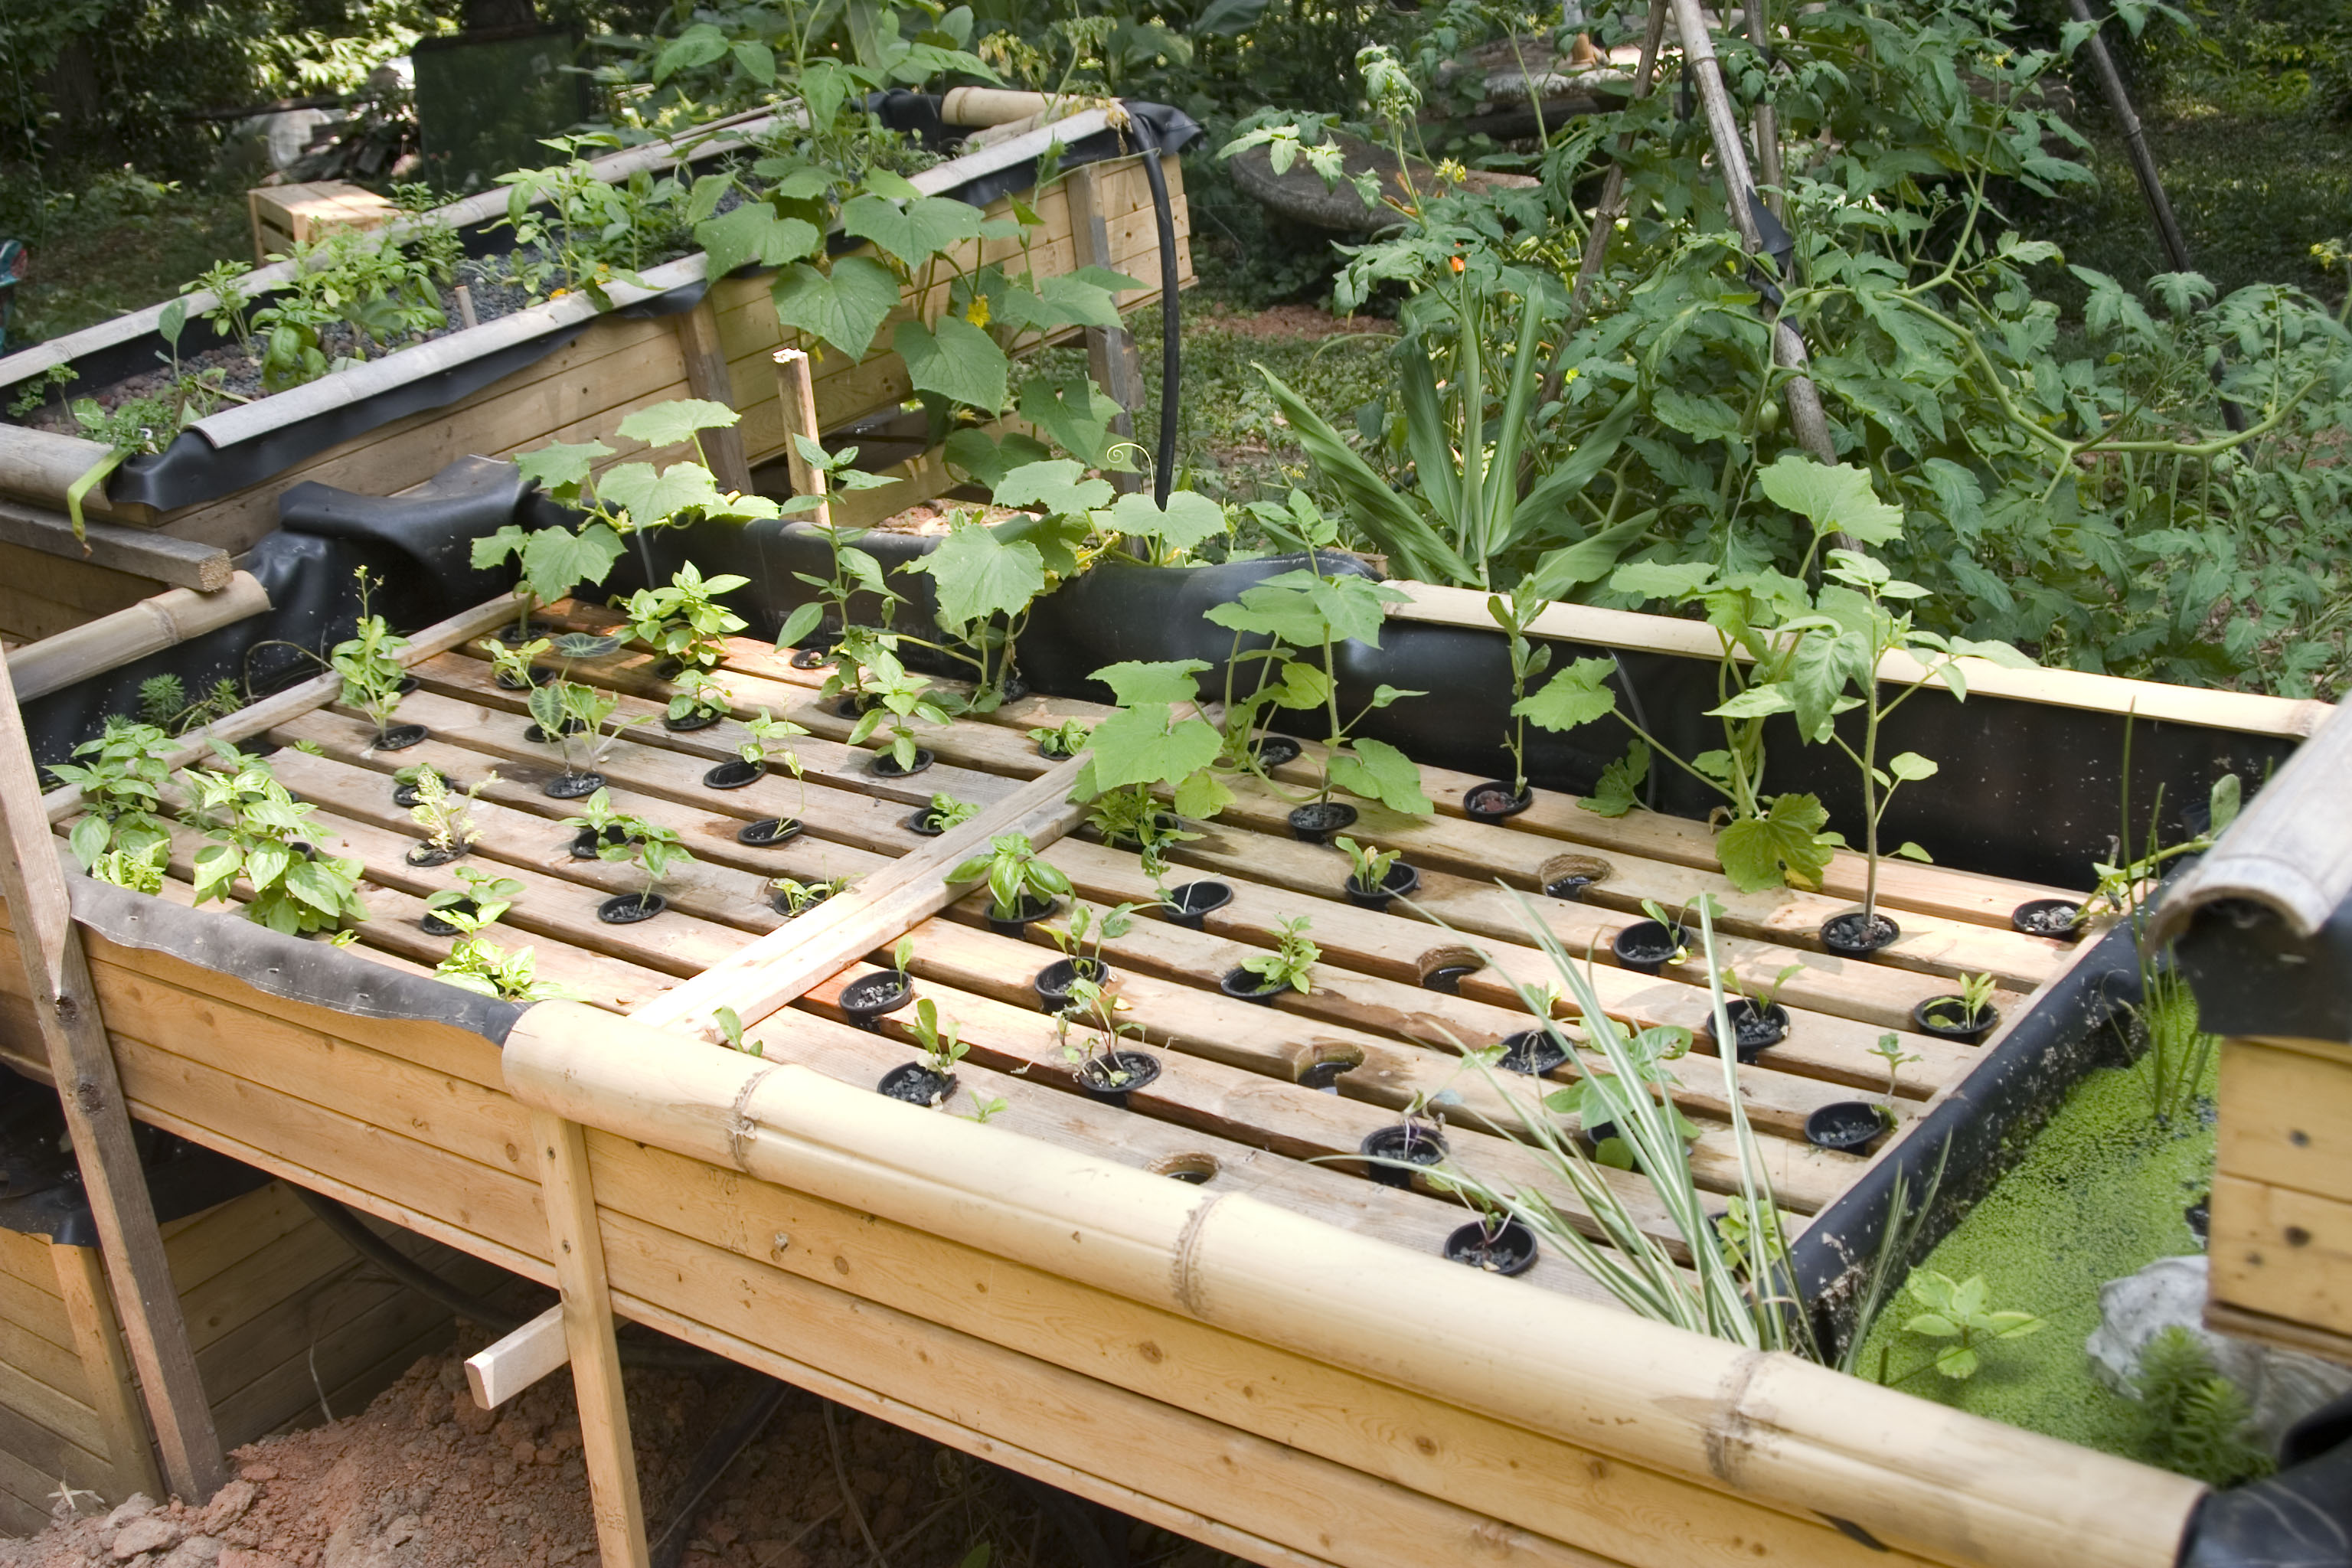 Aquaponics outperforms Organic Hydroponics